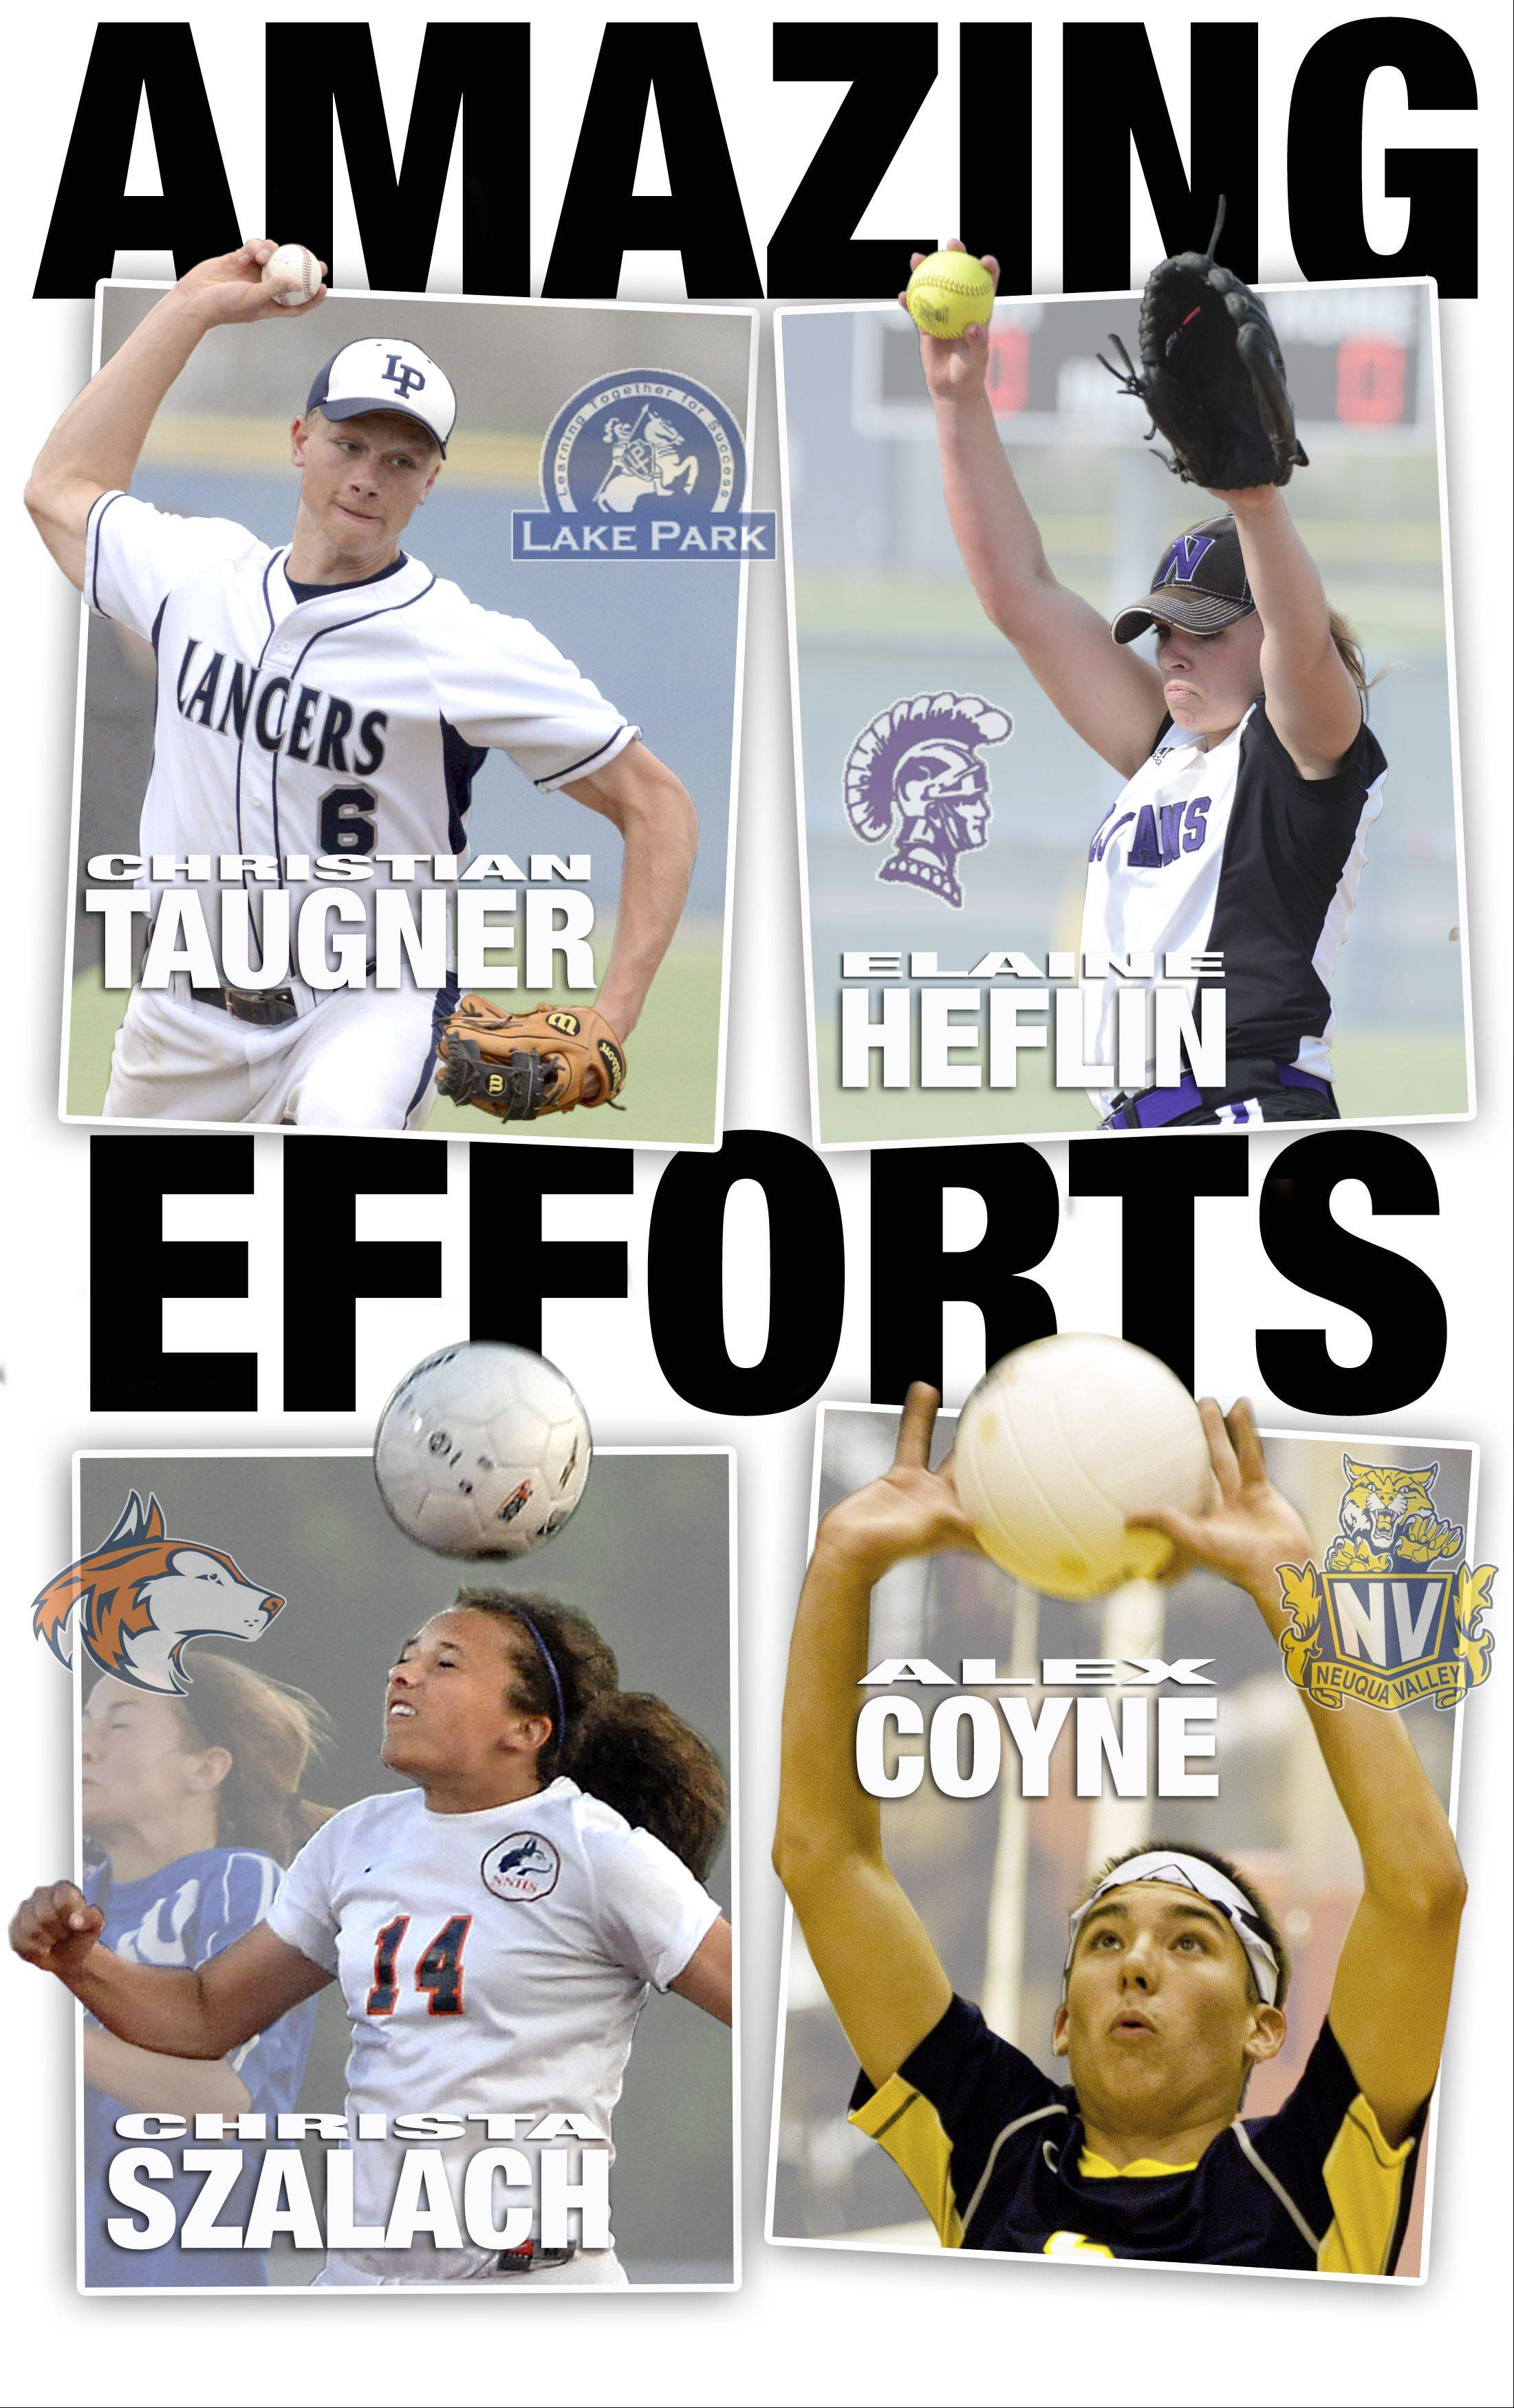 DuPage County All-Area Team Captains for Spring 2013 are Christian Taugner, Elaine Heflin, Christa Szalach, and Alex Coyne.